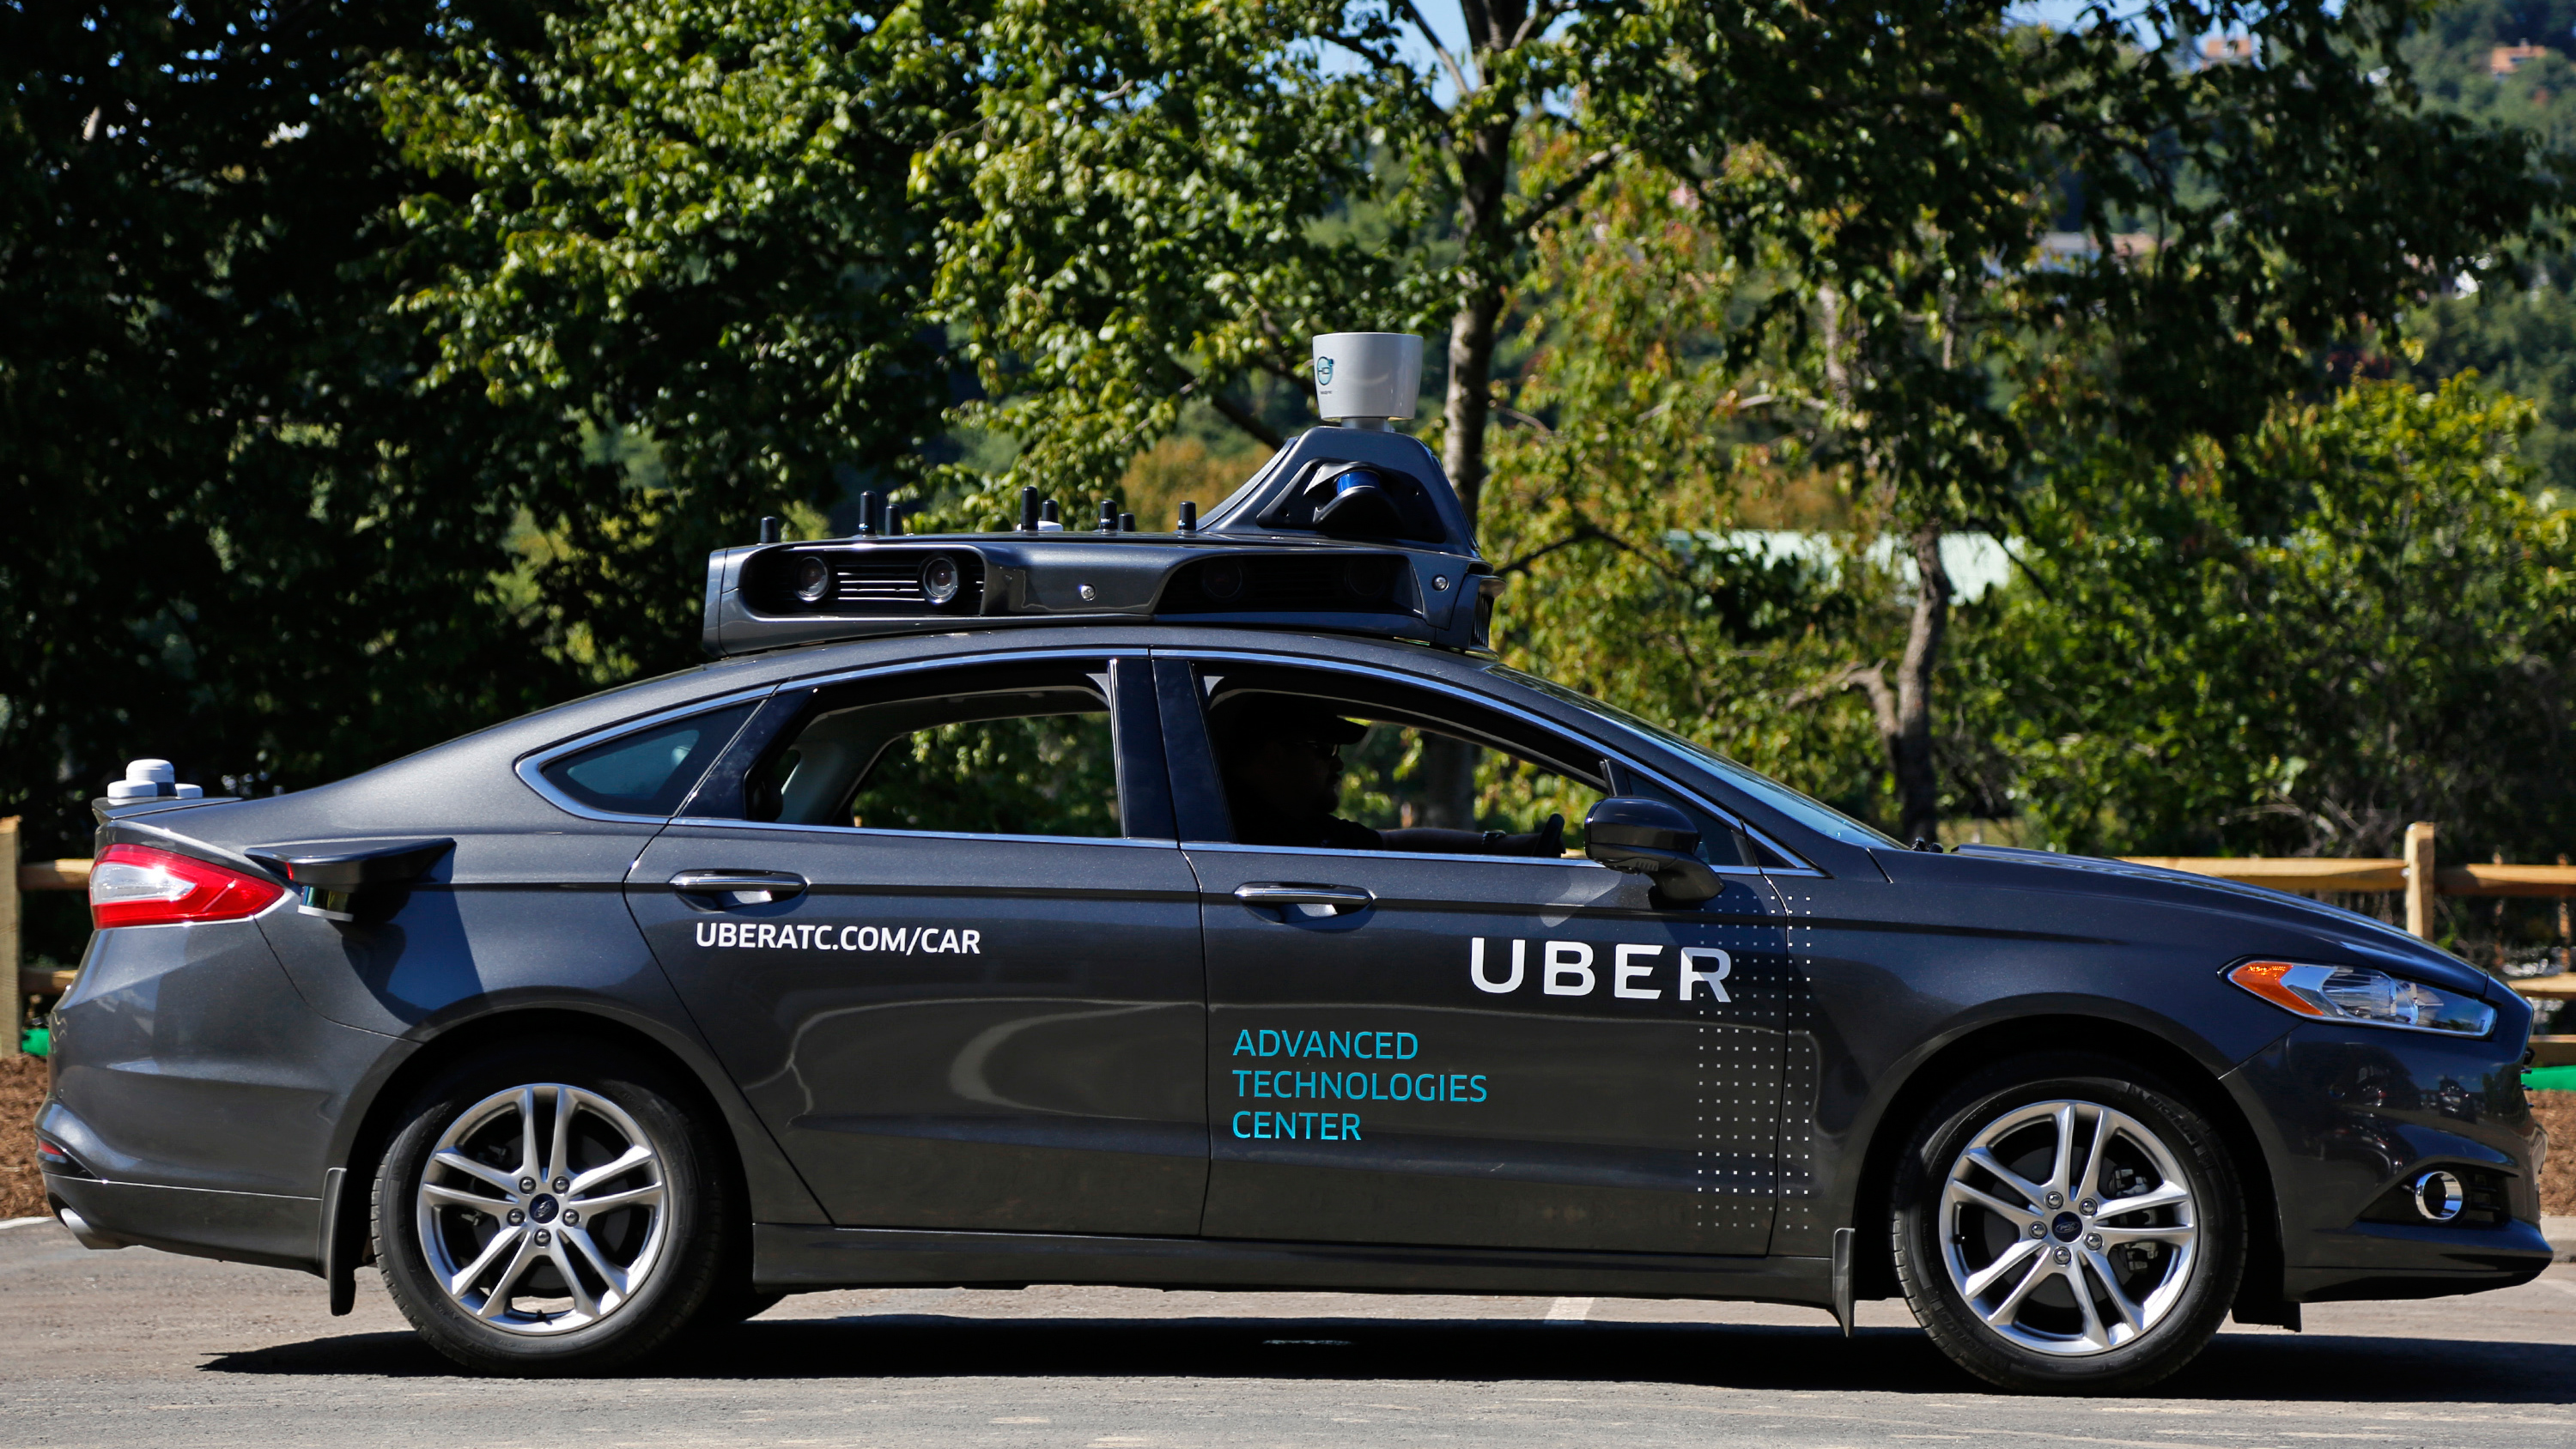 Uber safety driver Zachary Rearick sits in a self driving Uber after taking journalists on a ride through the streets of downtown Pittsburgh, Monday, Sept. 12, 2016. Starting Wednesday morning, Sept. 14, 2016 dozens of self-driving Ford Fusions will pick up riders who opted into a test program with Uber. While the vehicles are loaded with features that allow them to navigate on their own, an Uber engineer will sit in the driver's seat and seize control if things go awry. (AP Photo/Gene J. Puskar)